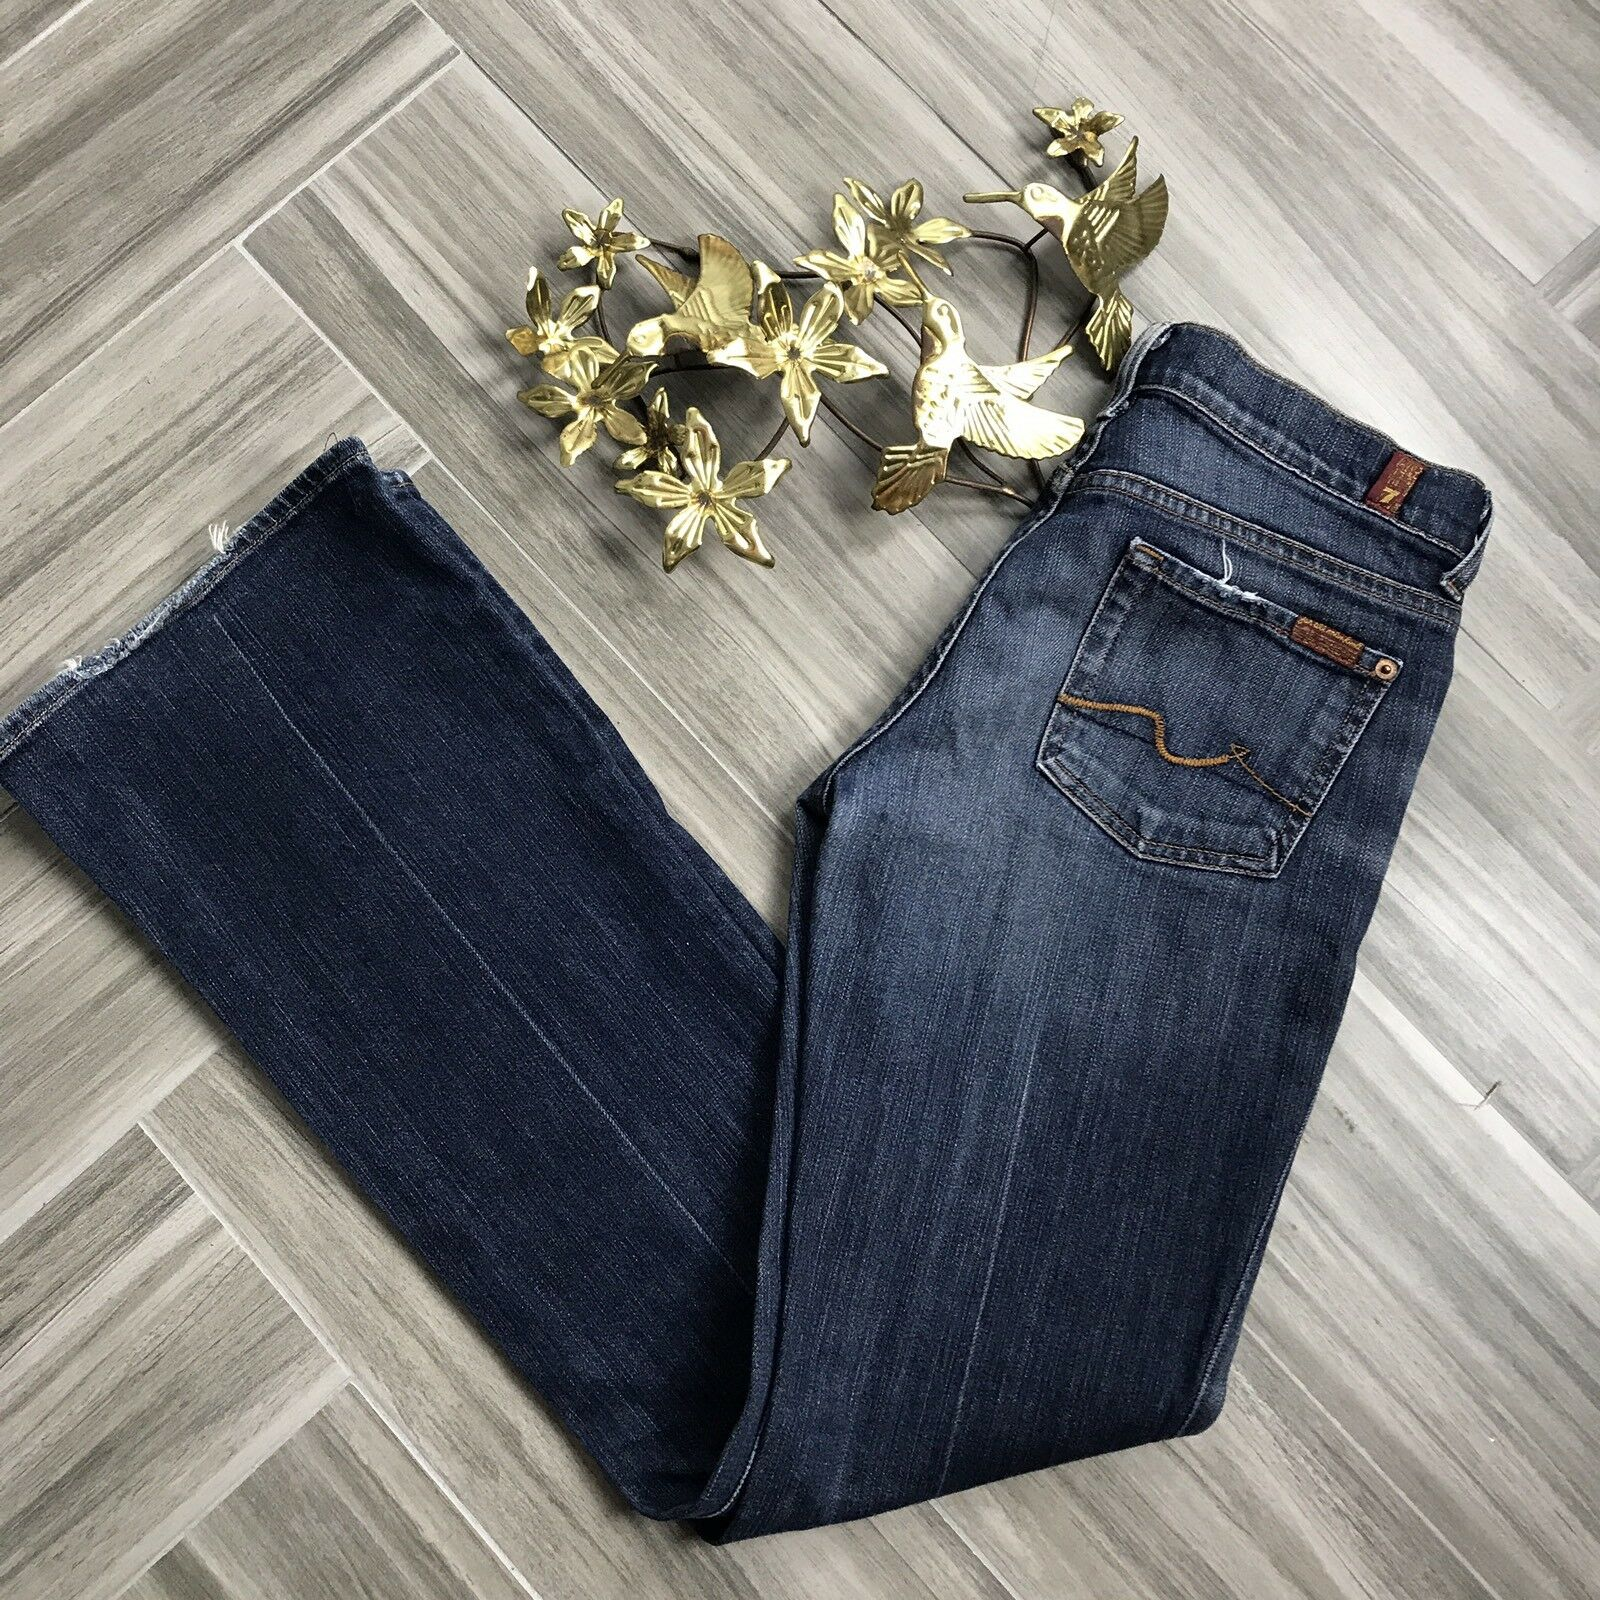 7 For All Mankind Womens Dark bluee Bootleg Jeans Size 26 Casual Low Rise Denim